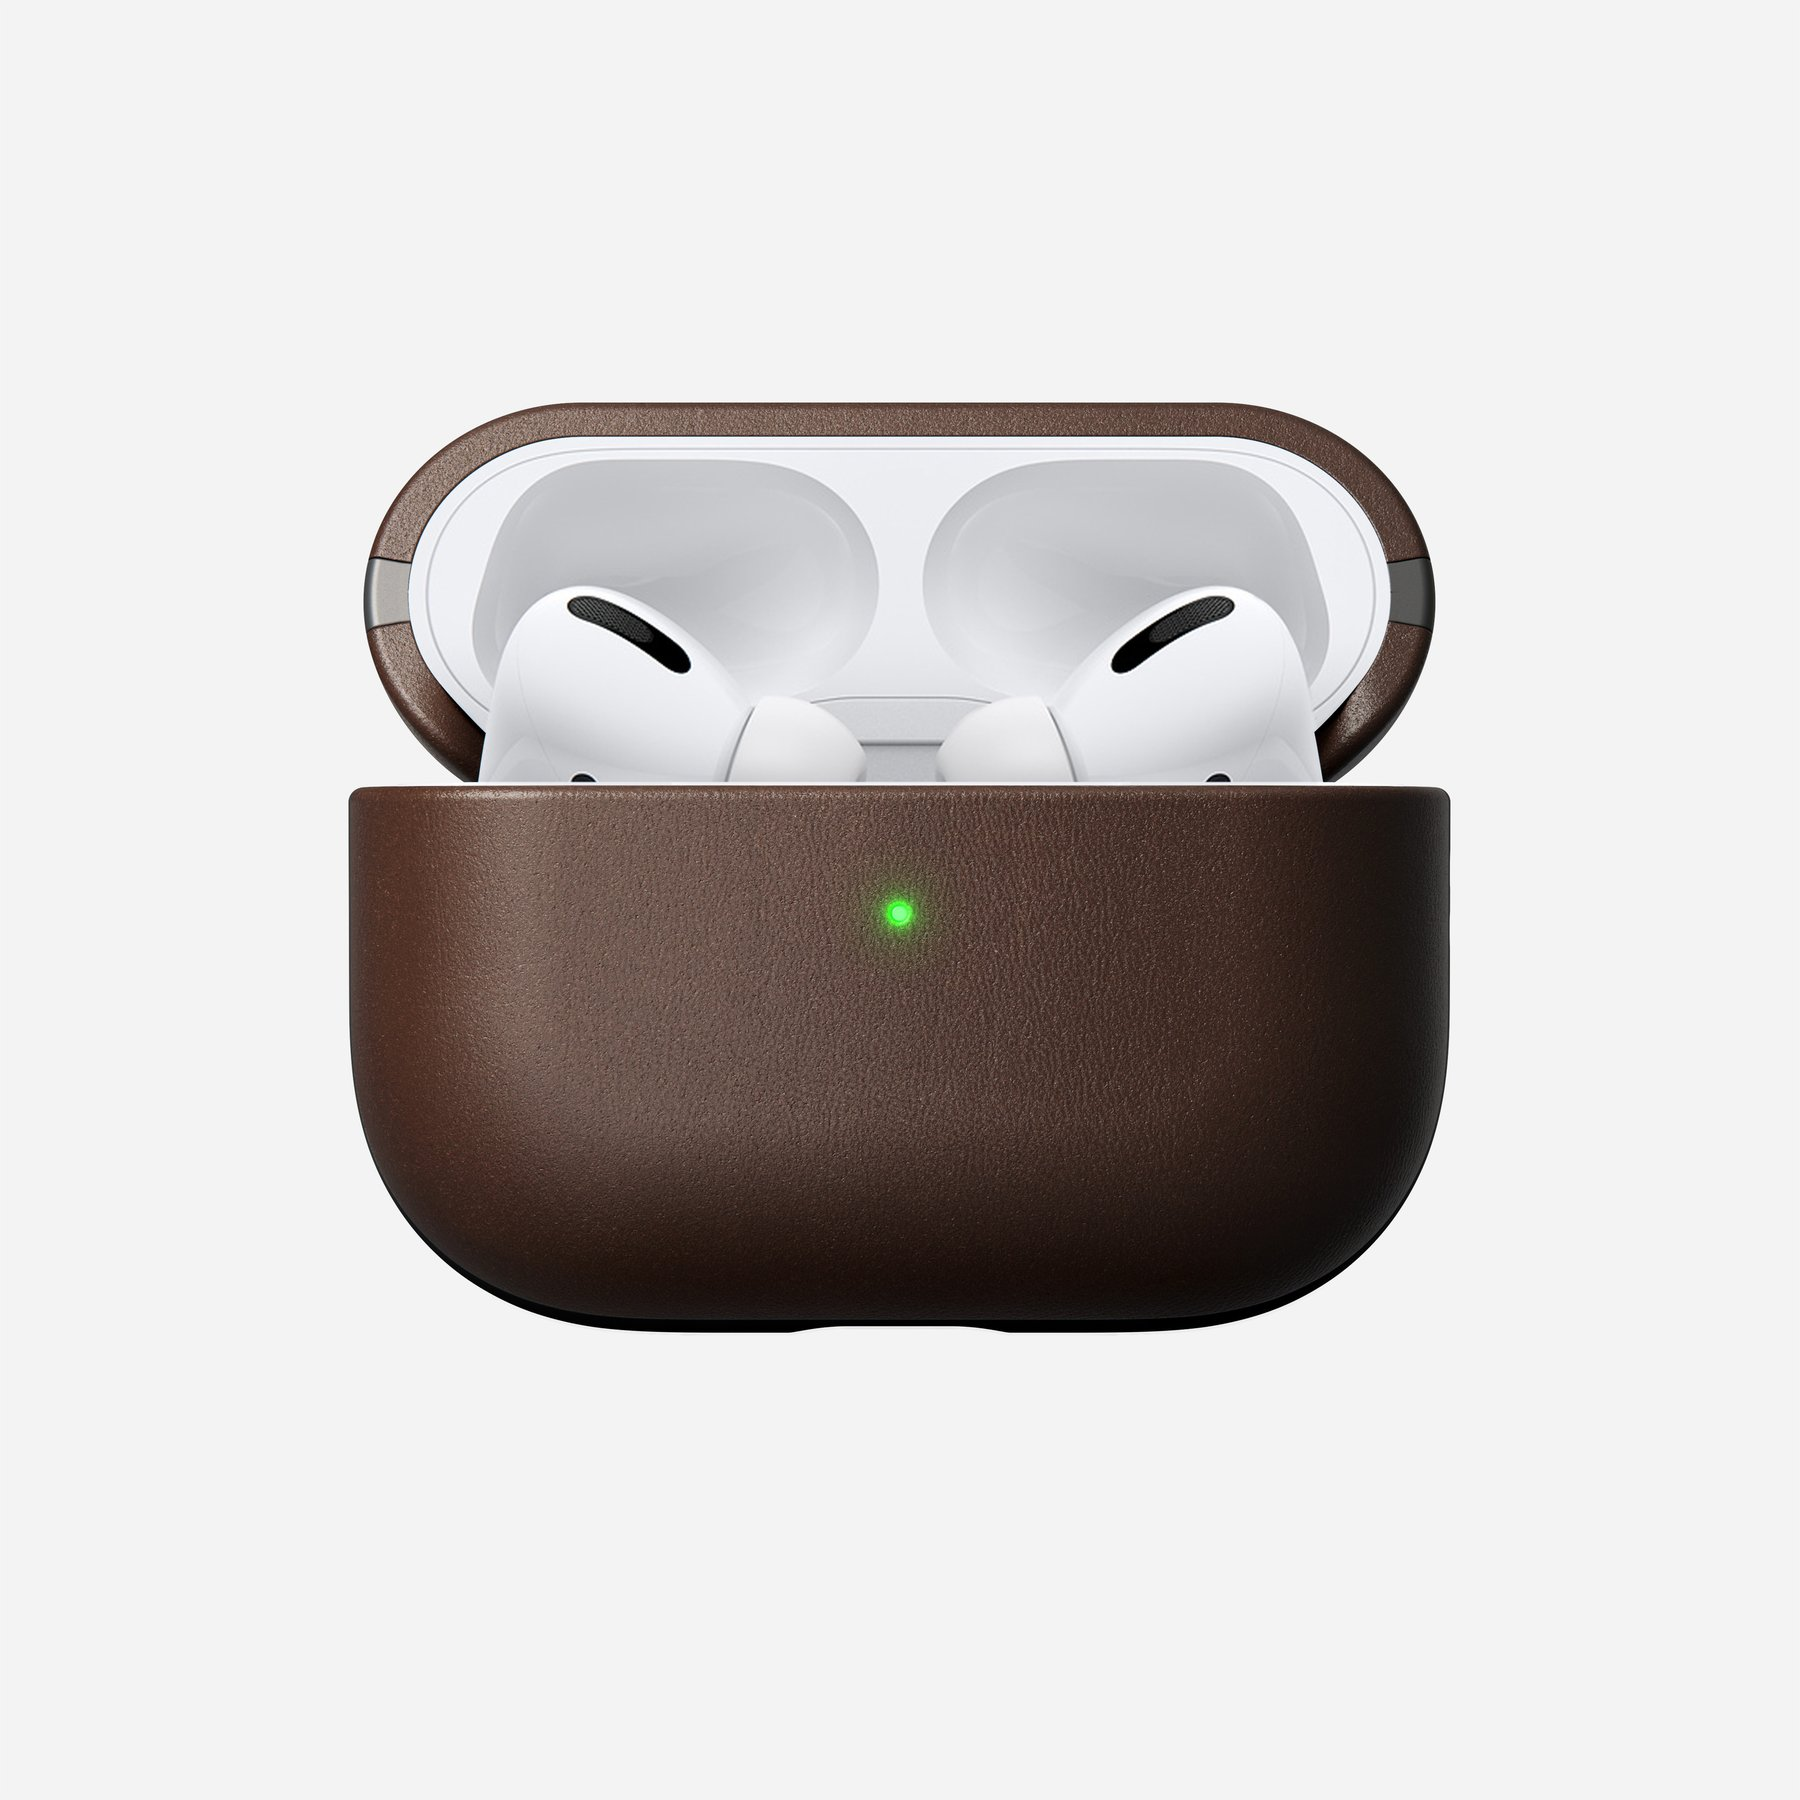 Nomad Airpods Pro Case Rustic Brown Leather